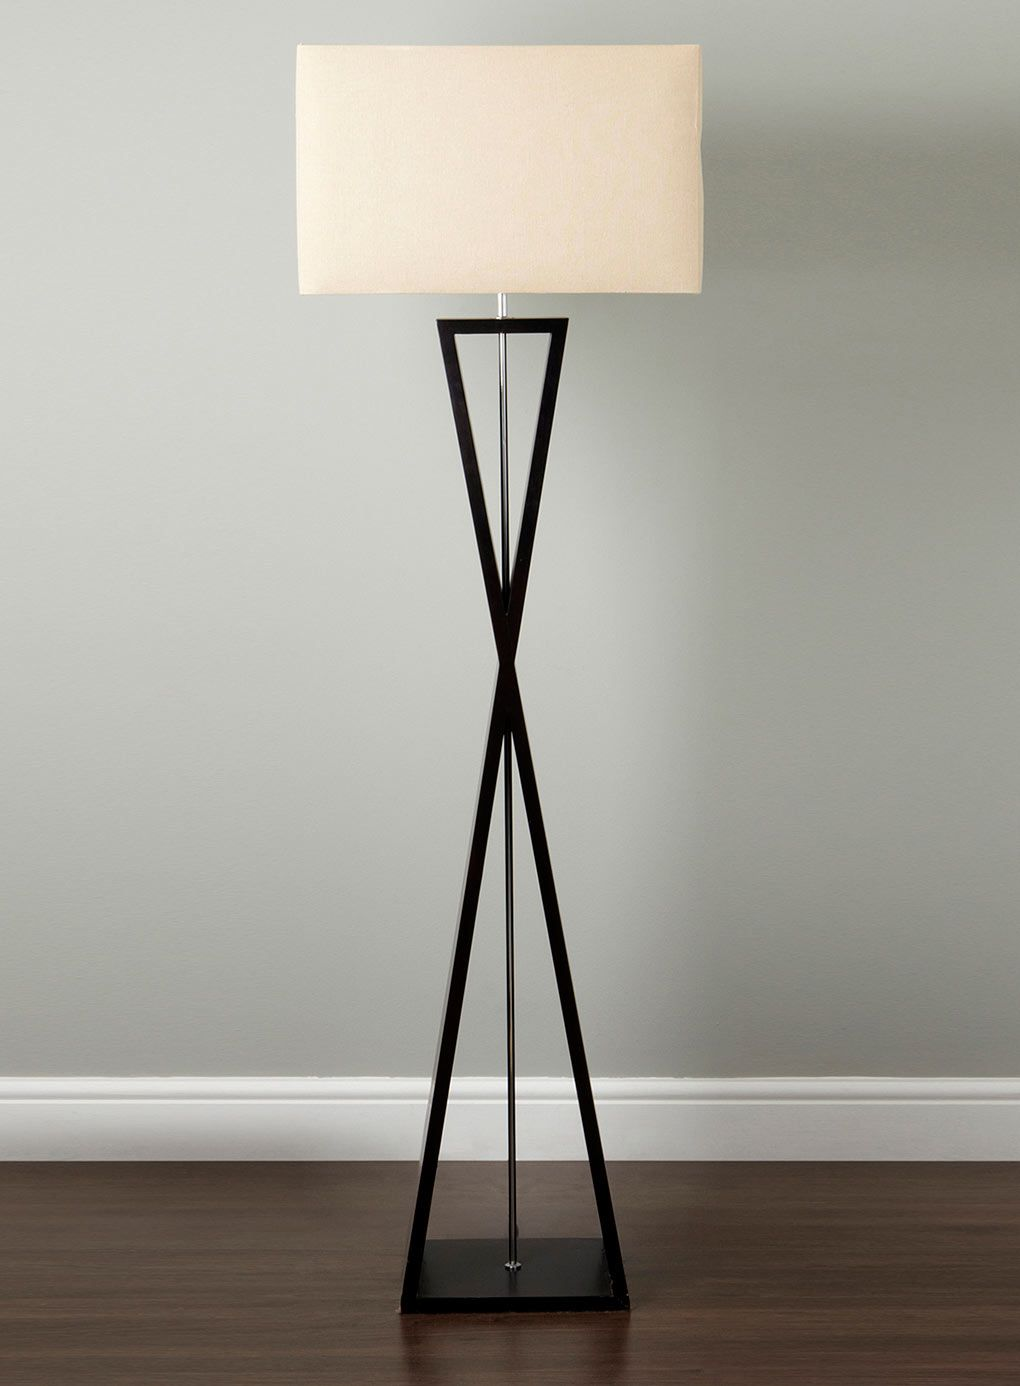 Photo 2 of Kayden Floor Lamp | Lighting | Living room ...